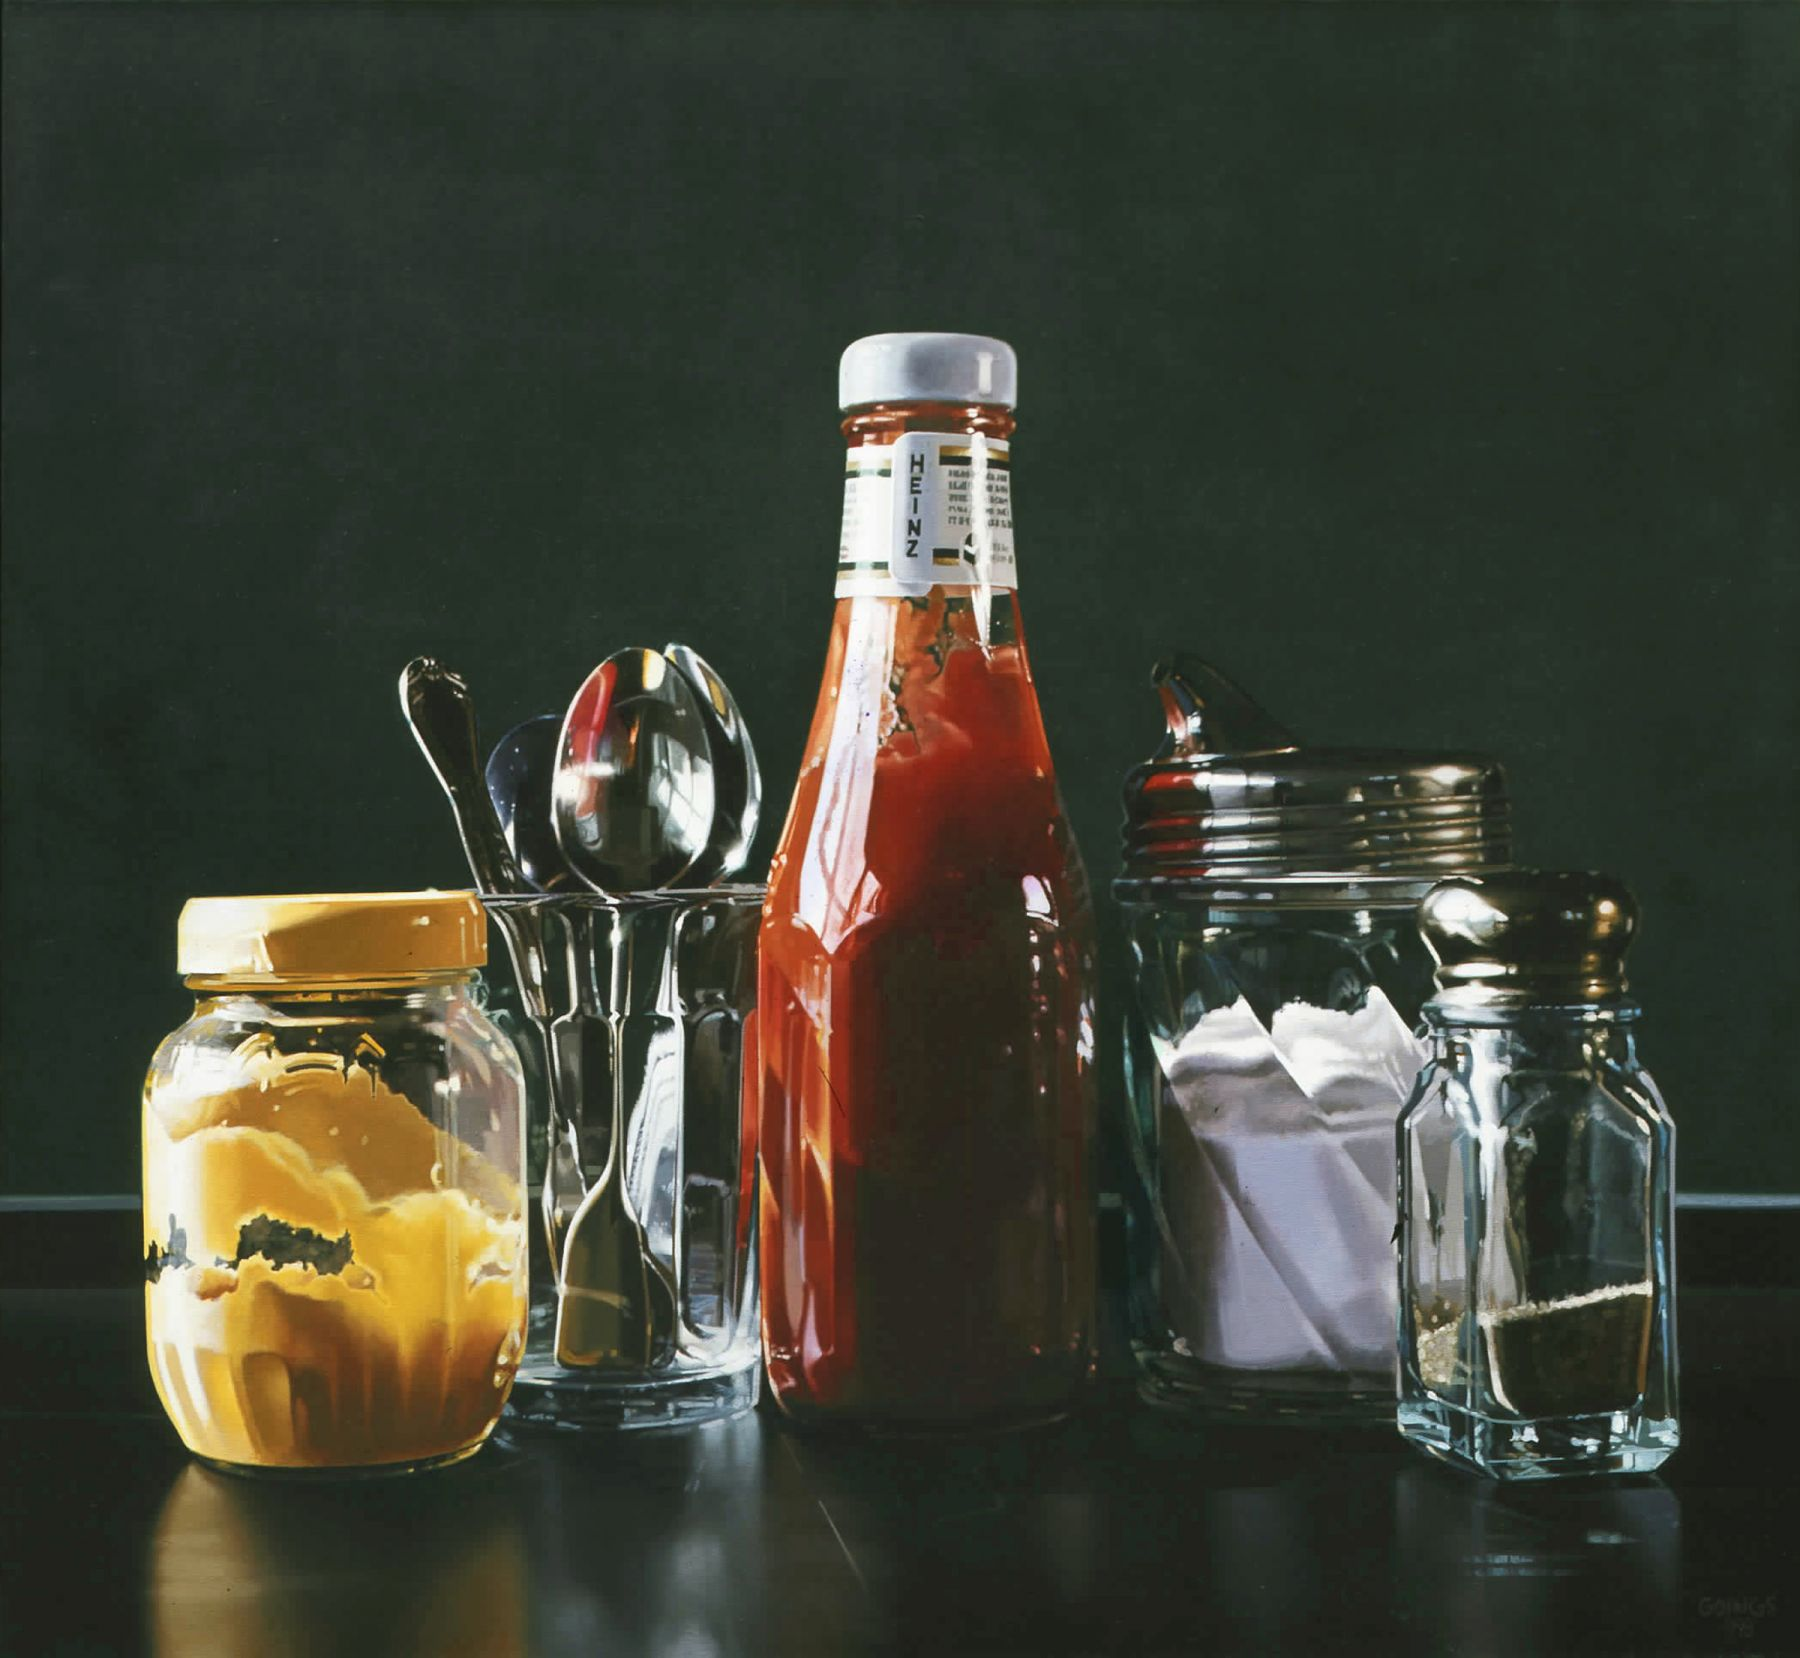 Ralph Goings, Still Life with Spoons, 1998, oil on linen, 32 x 25 inches